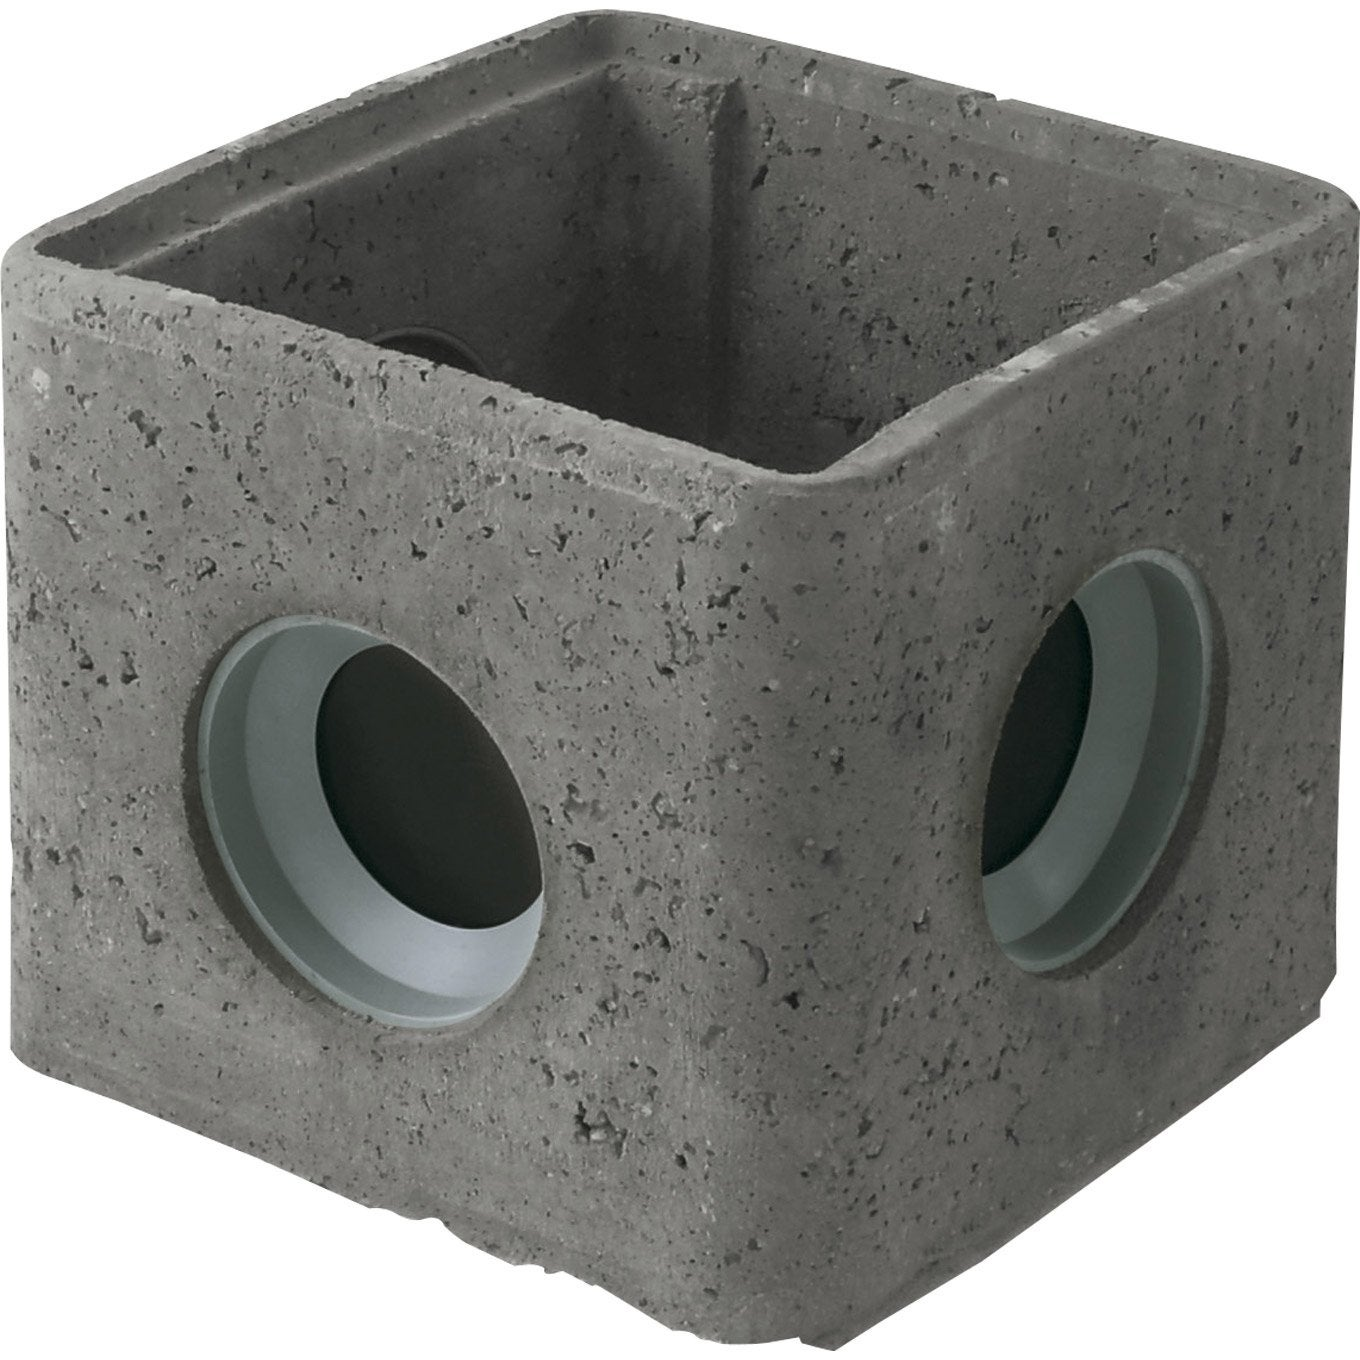 Regard joints incorpor s rmj30 b ton x mm leroy merlin - Regard beton 60x60 ...